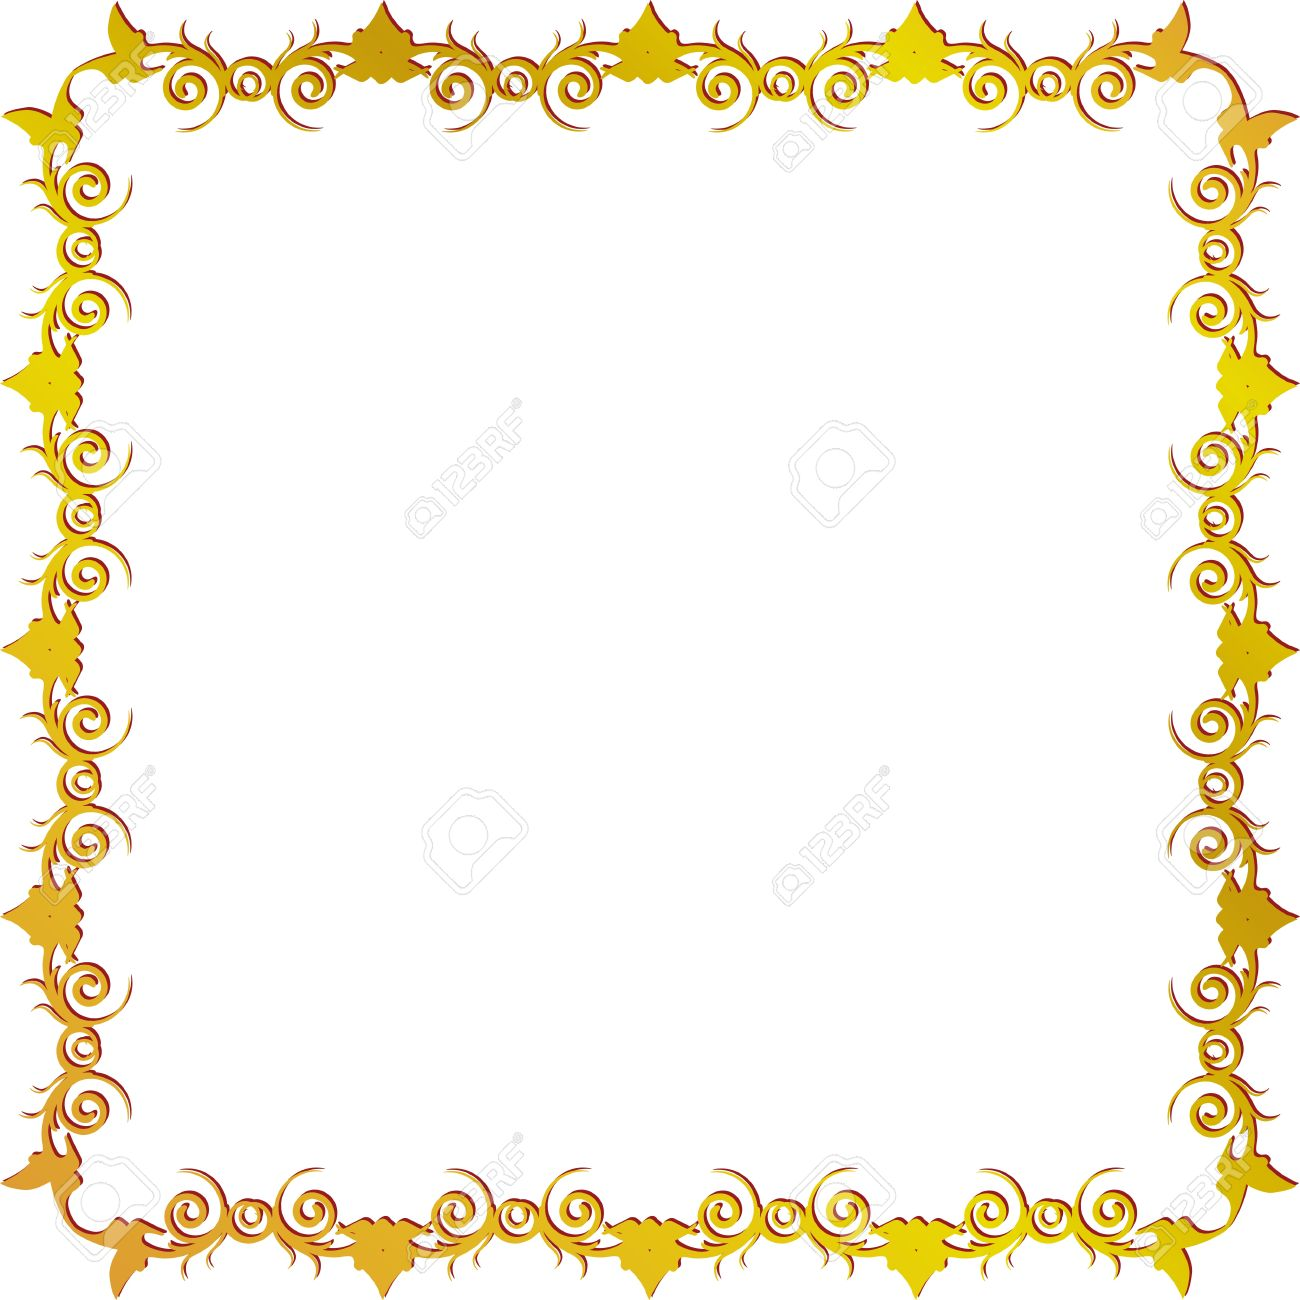 Gold Scroll Border | Free download best Gold Scroll Border on ...